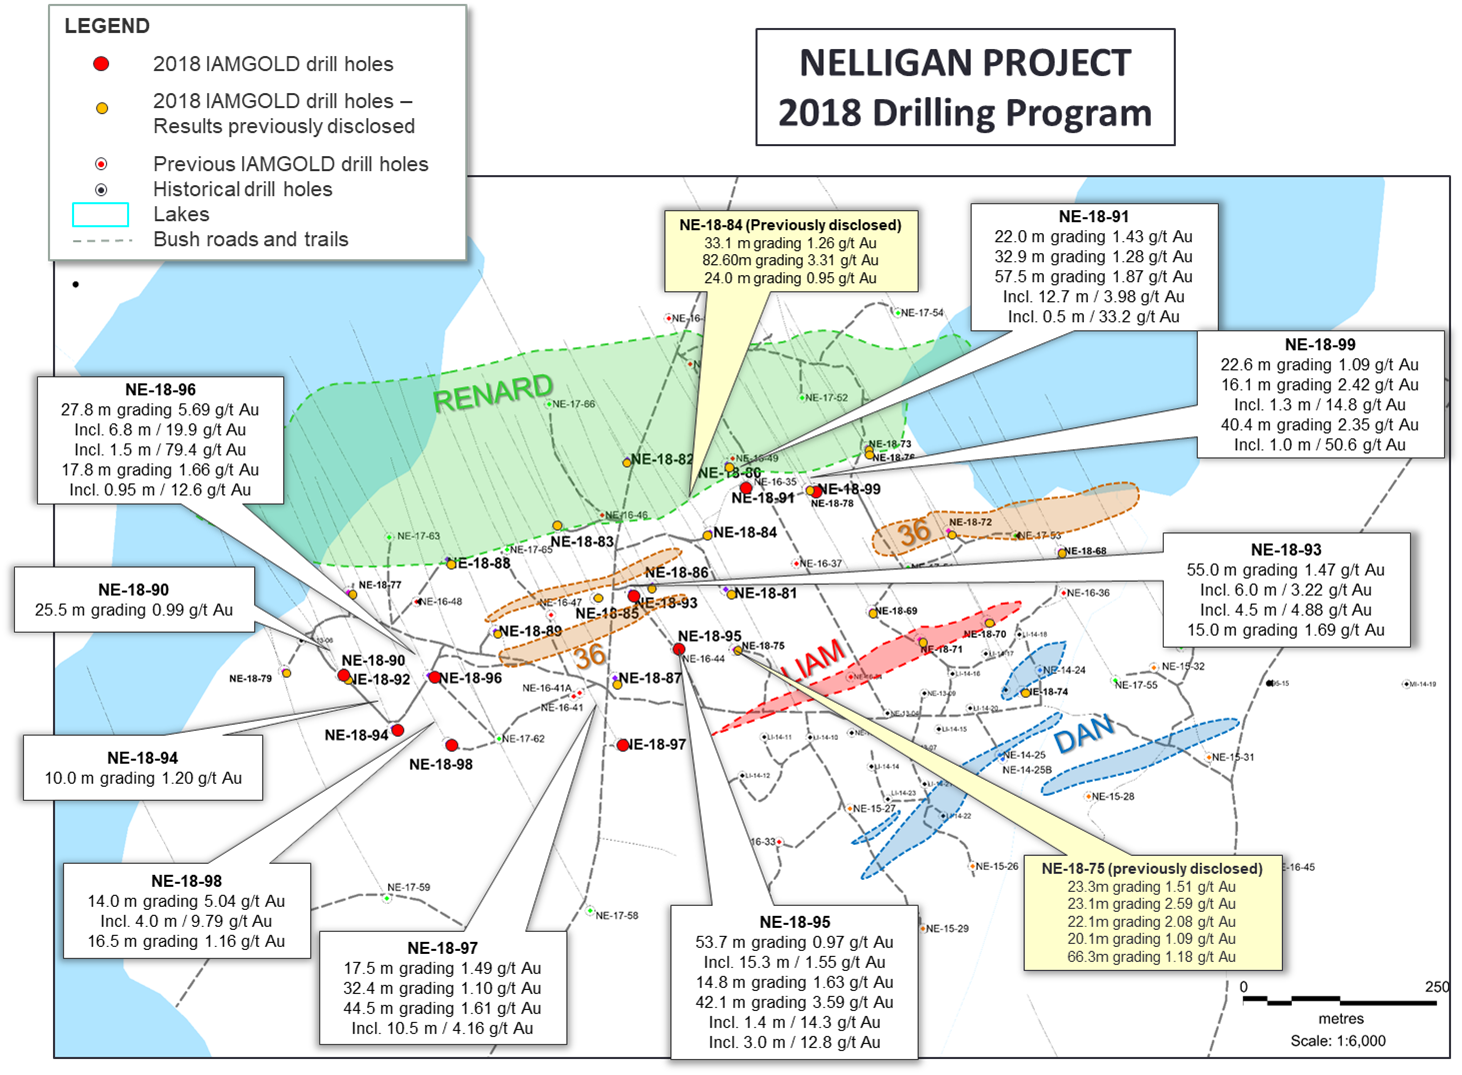 NELLIGAN PROJECT